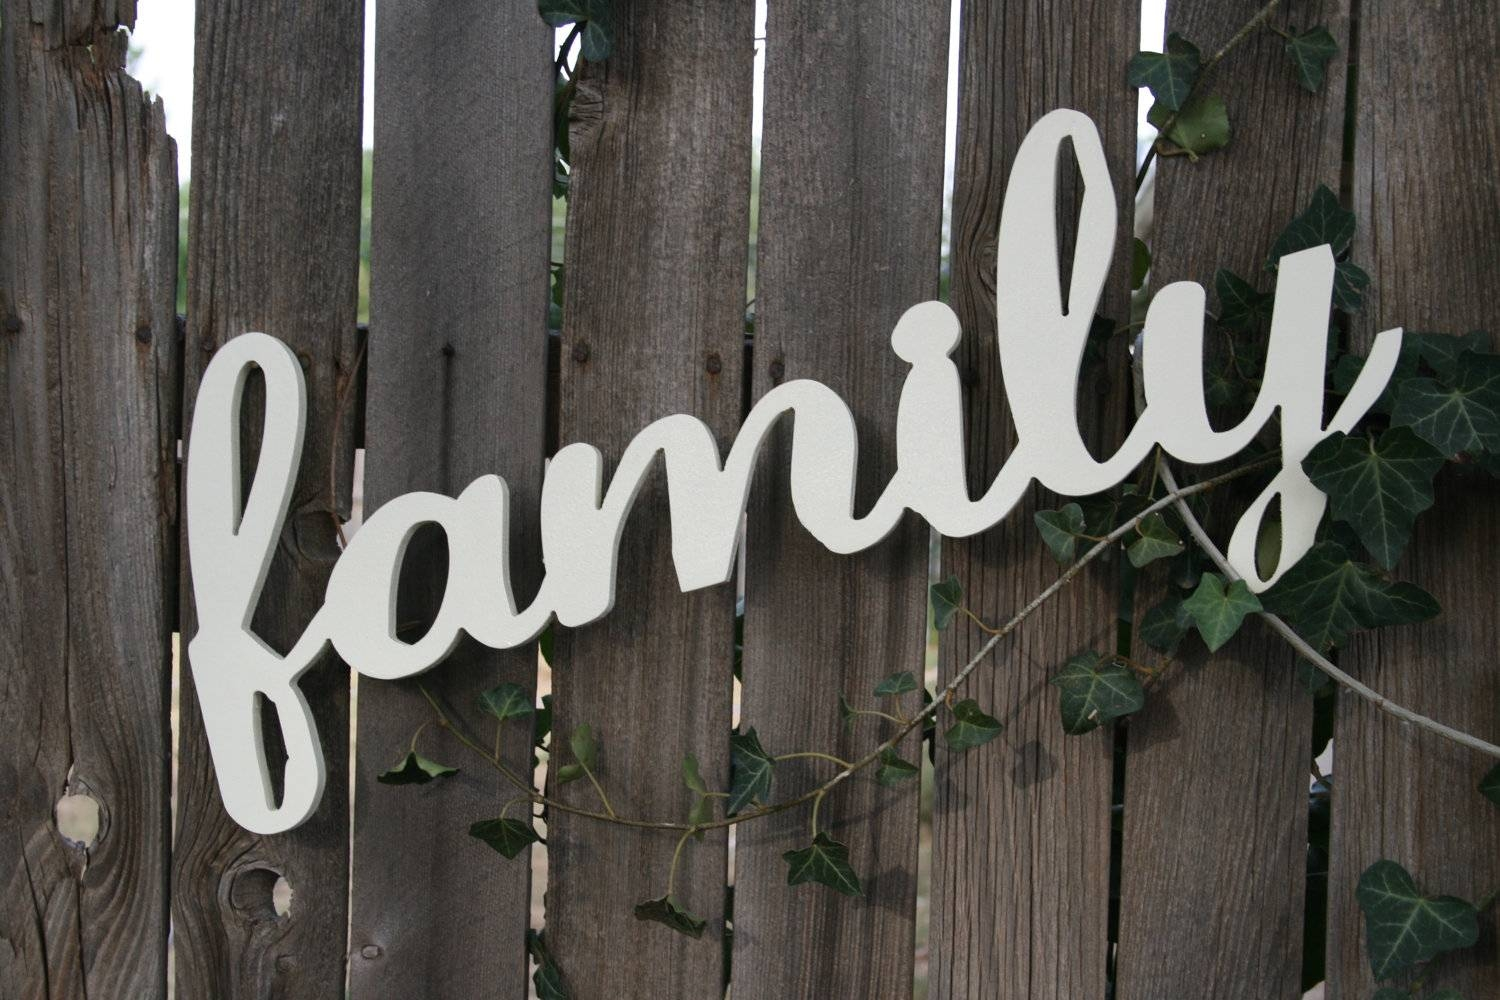 Word Wall Art Wood | Wallartideas With Regard To 2017 Wooden Word Wall Art (View 10 of 30)